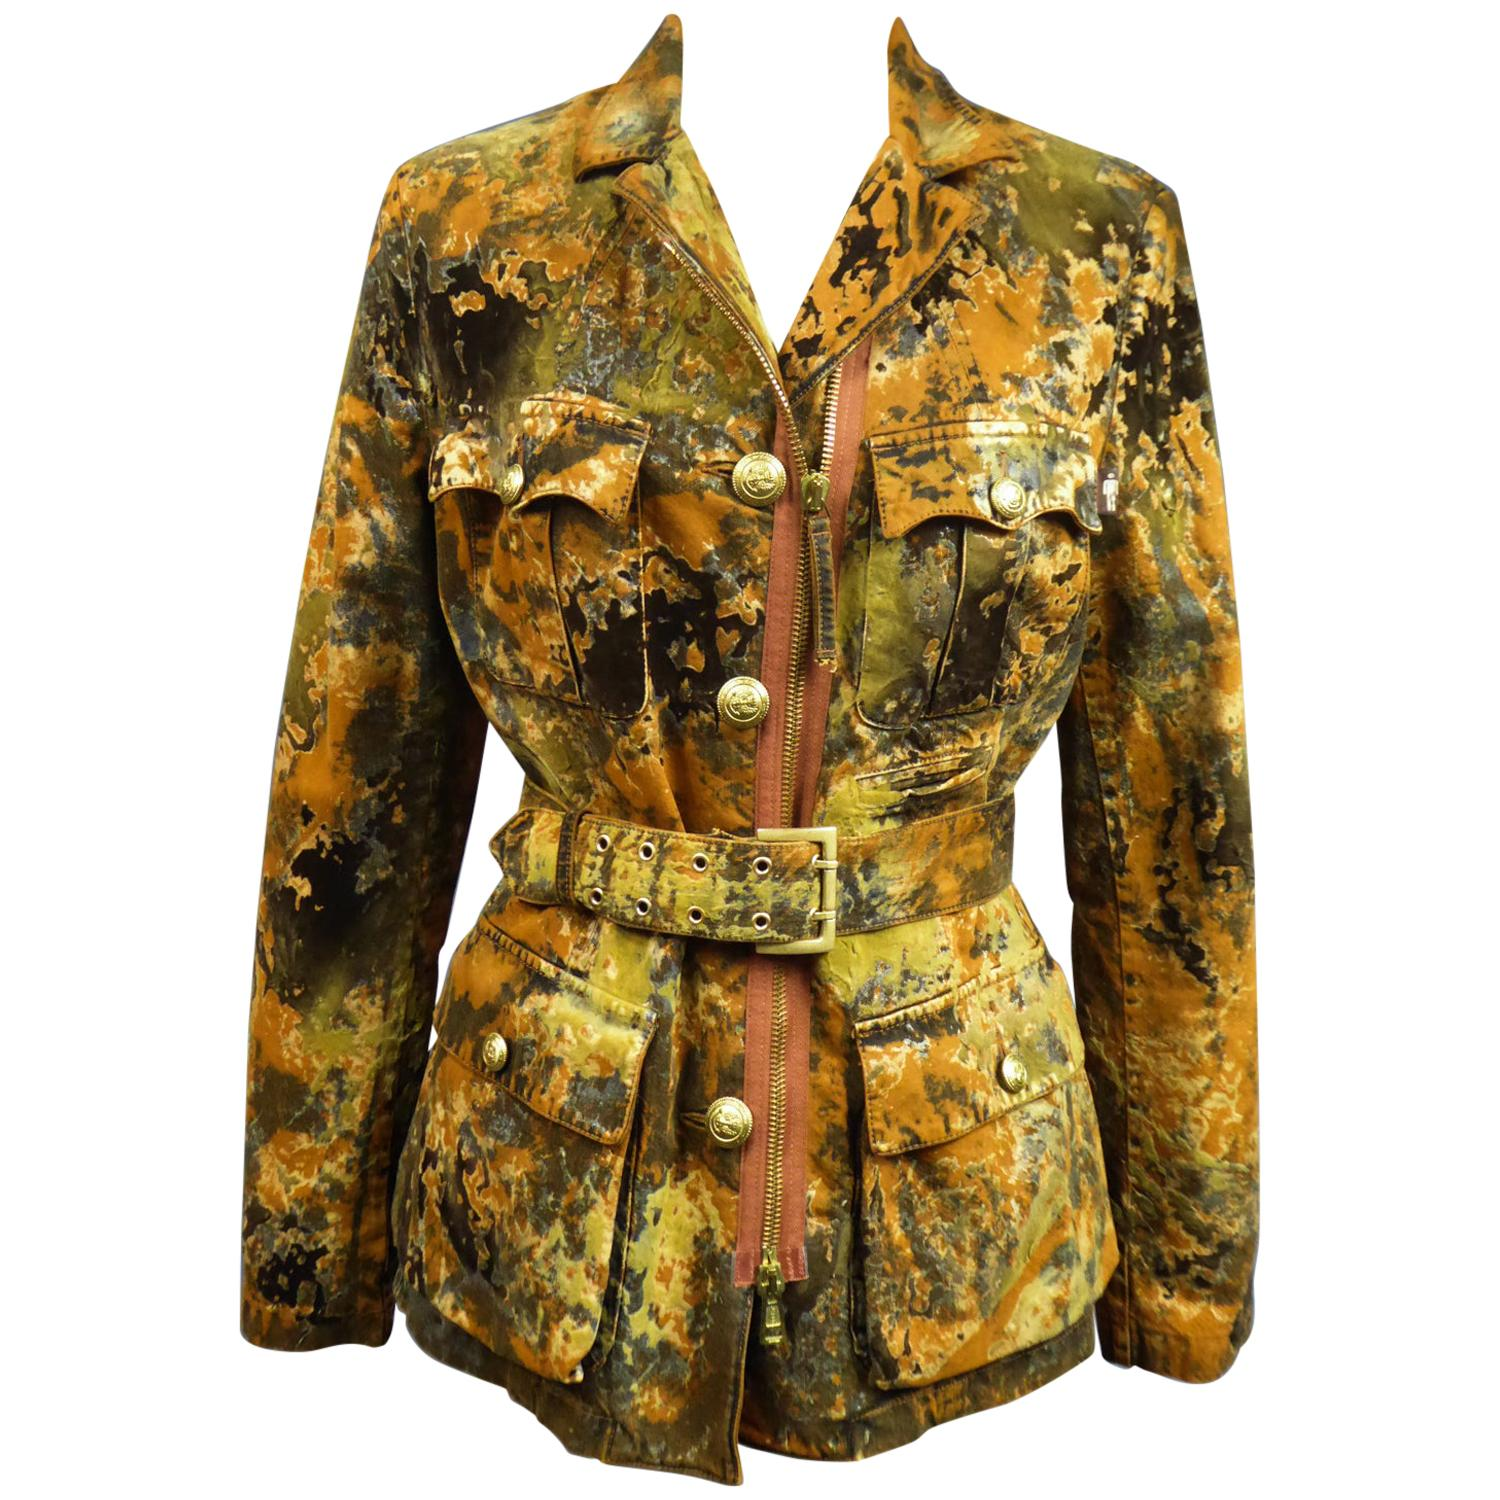 A Jean-Paul Gaultier Jacket of Military Inspiration Circa 2005/2010